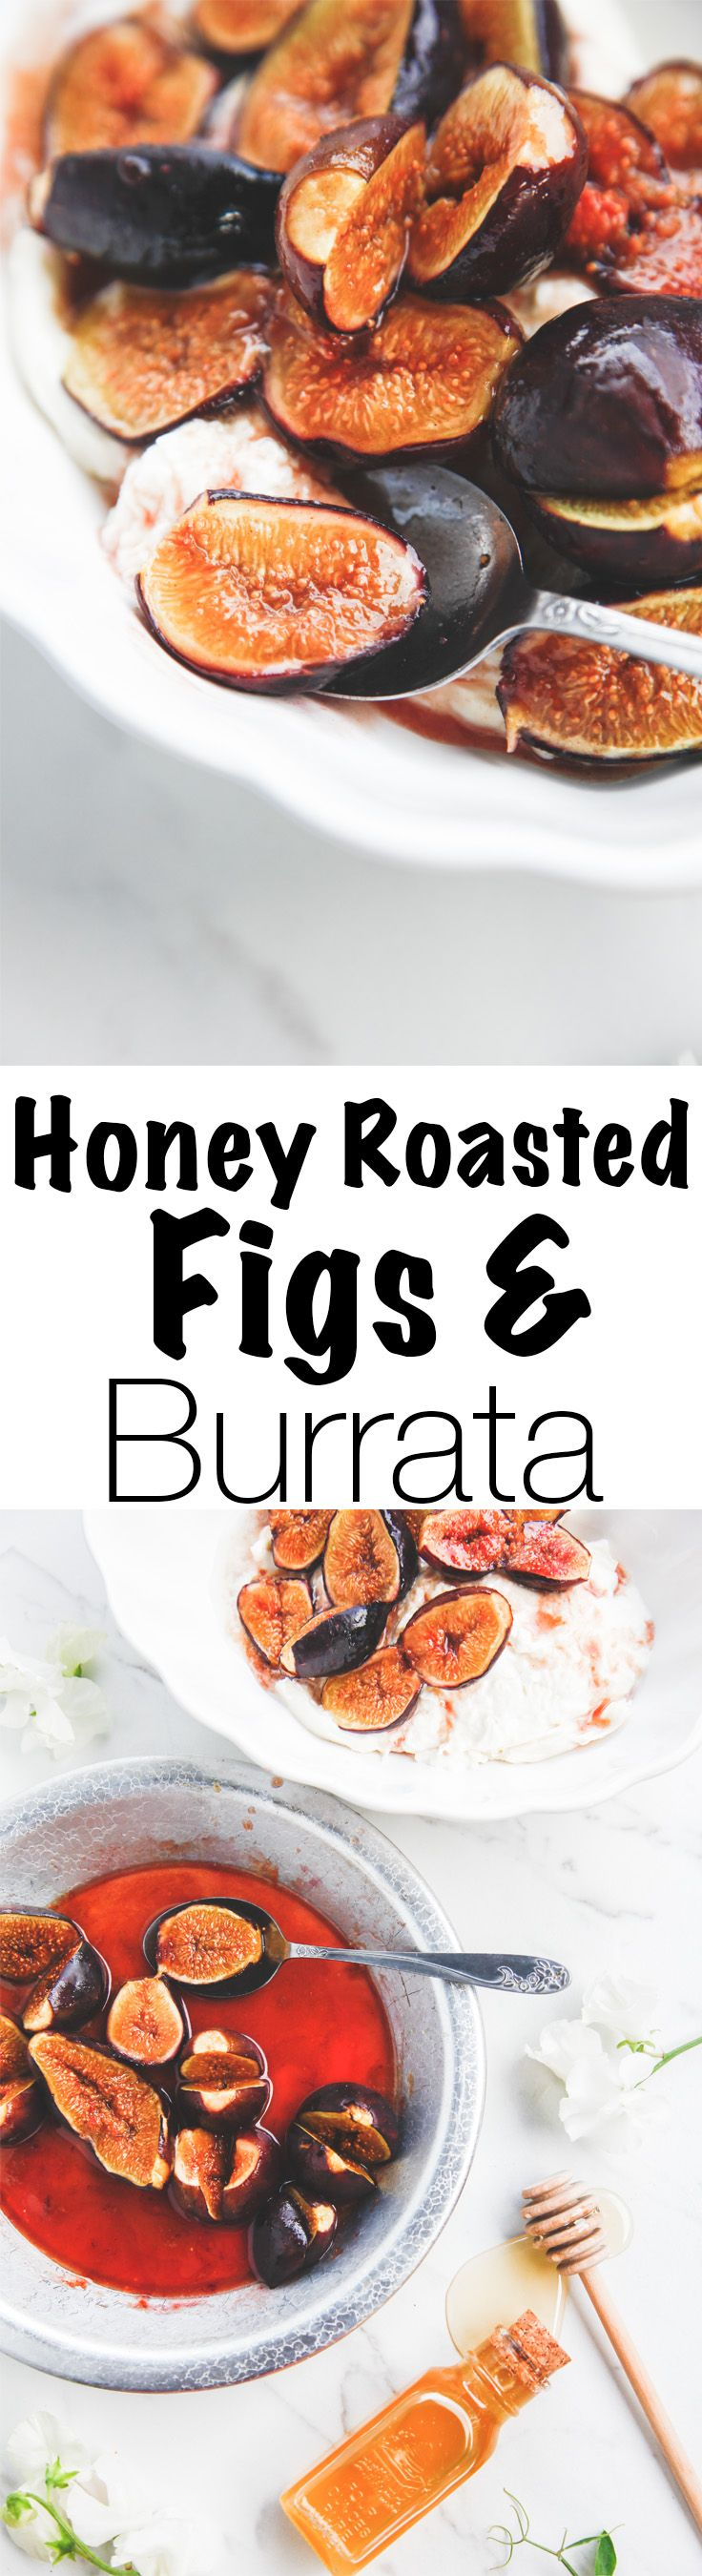 Enjoy an elegant but easy summer dessert with this recipe for Honey Roasted Figs and Burrata. Impressing company has never been easier! Via @thebrooklyncook